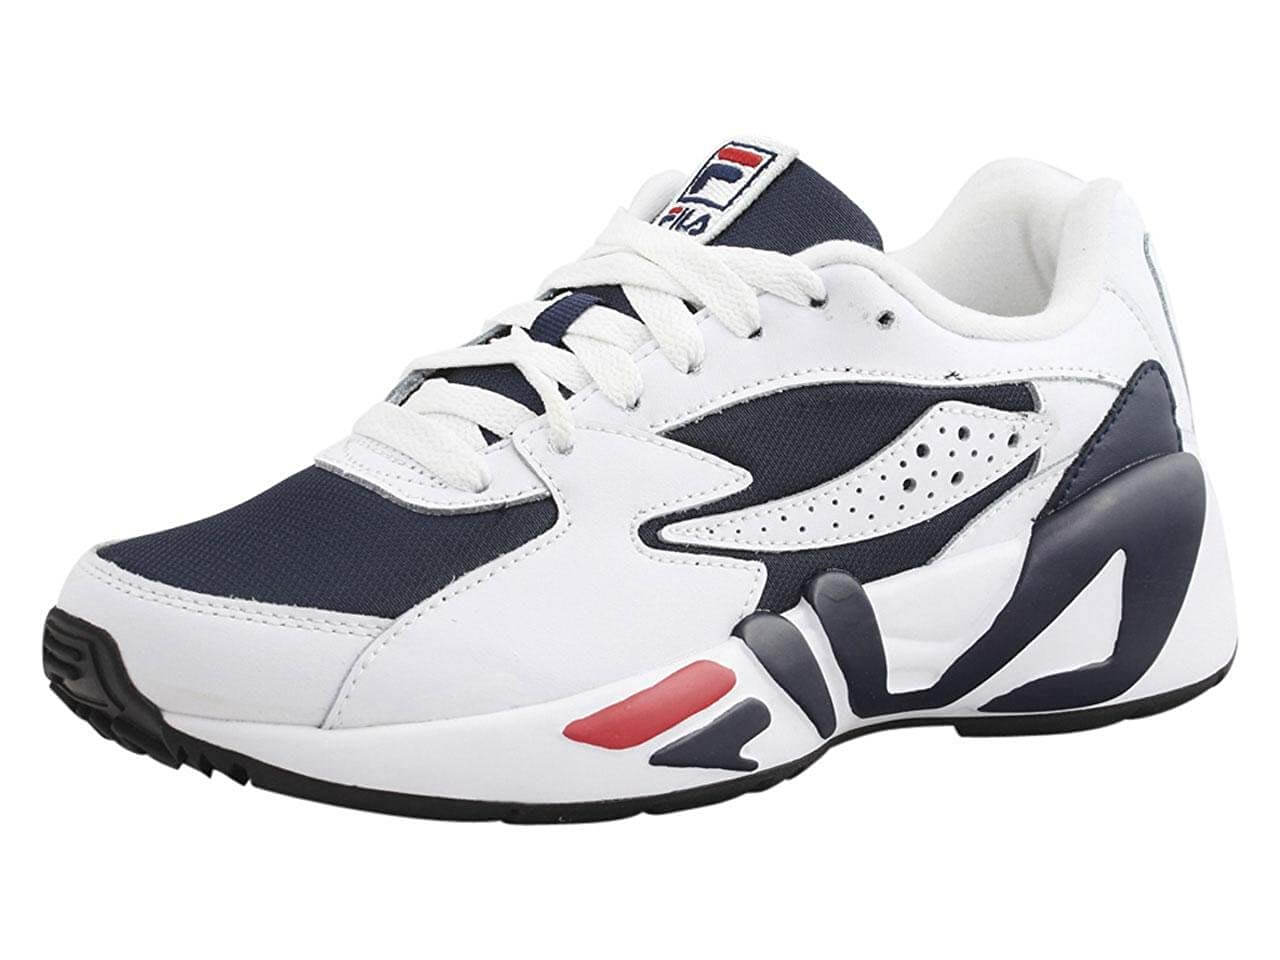 Fila Mindblower Reviewed for Quality